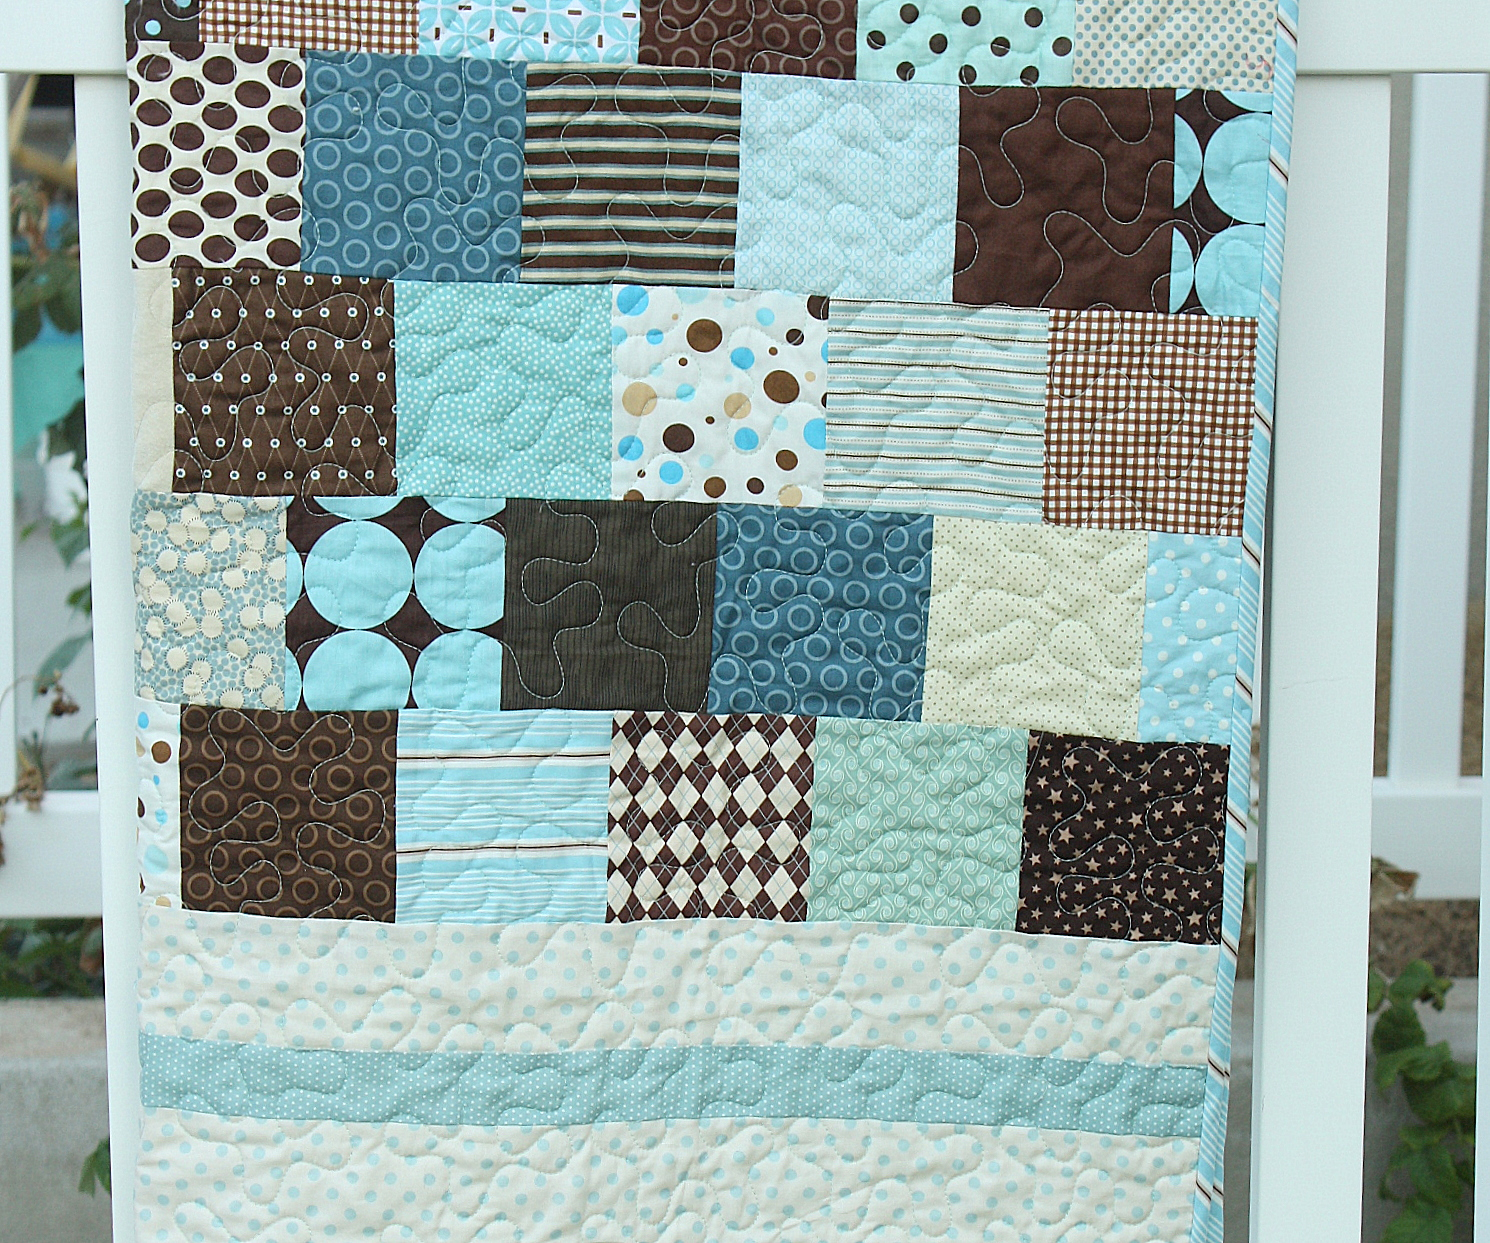 place says white my blue red first in america show at and inspiration quilt interest embroidered salute days of arizona miller won guild quilts this day quilters theme the sampler patriot lynn